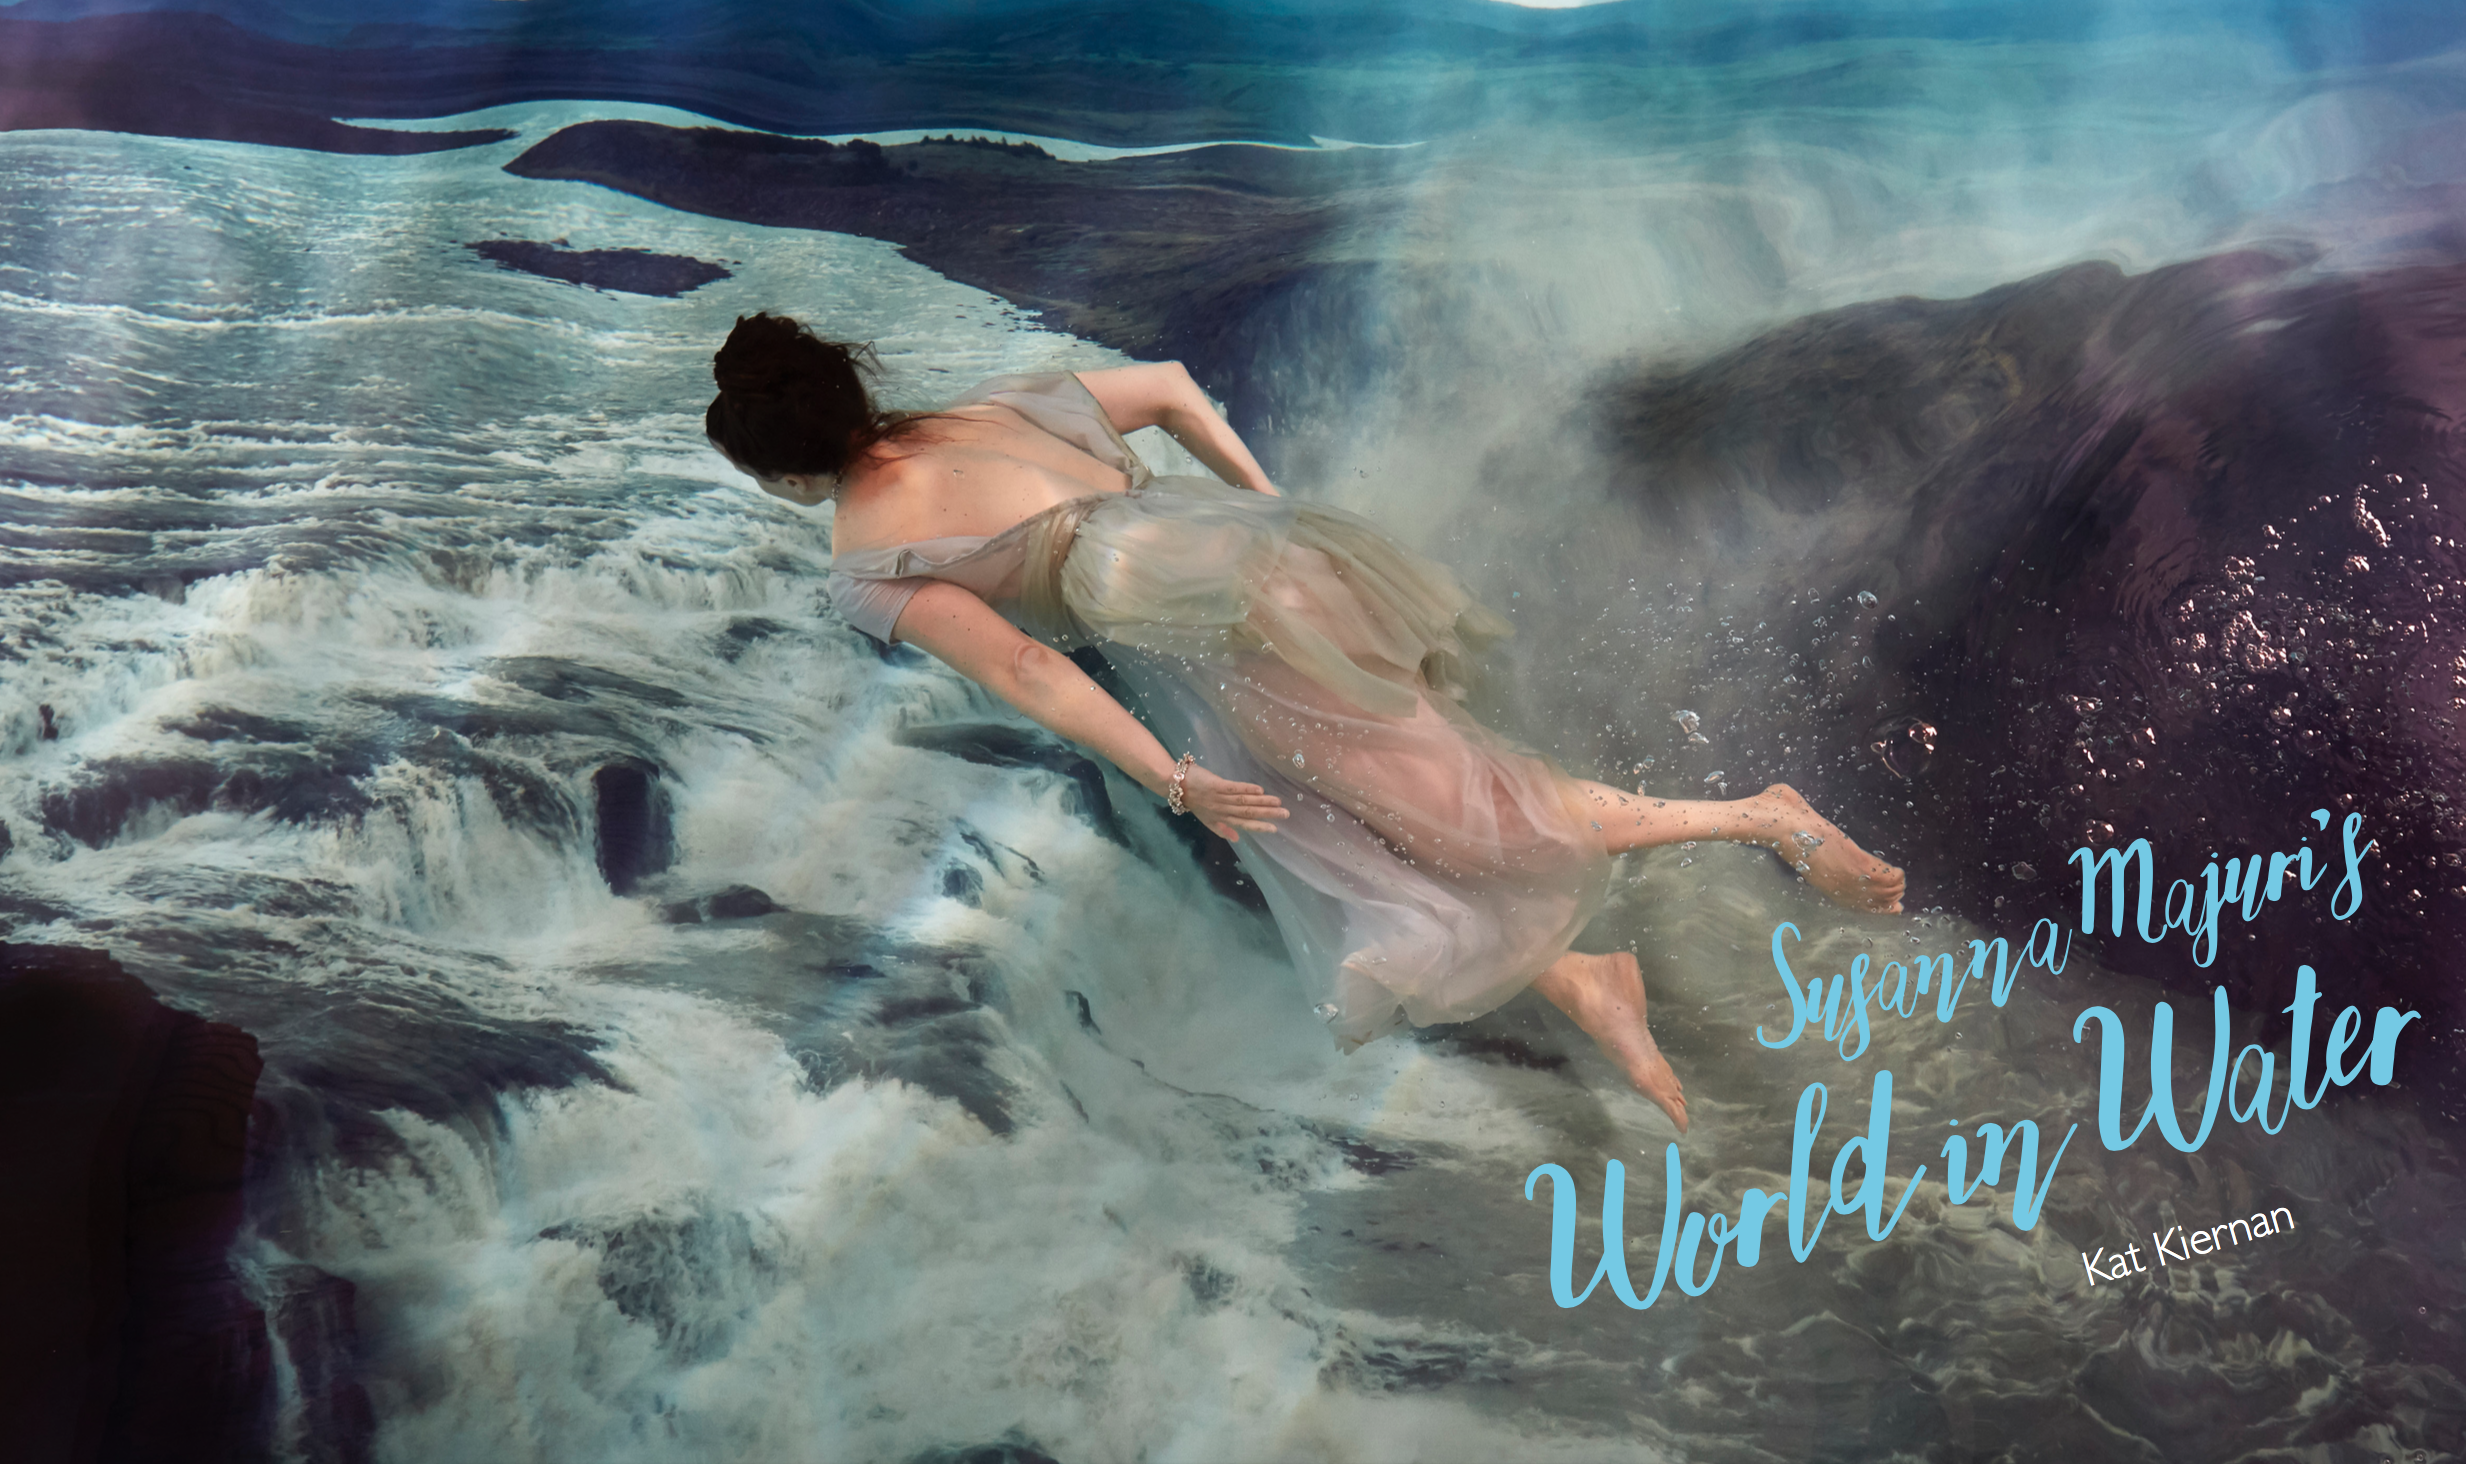 Susanna Majuri's World in Water  Don't Take Pictures, Issue 9 (September 2017)